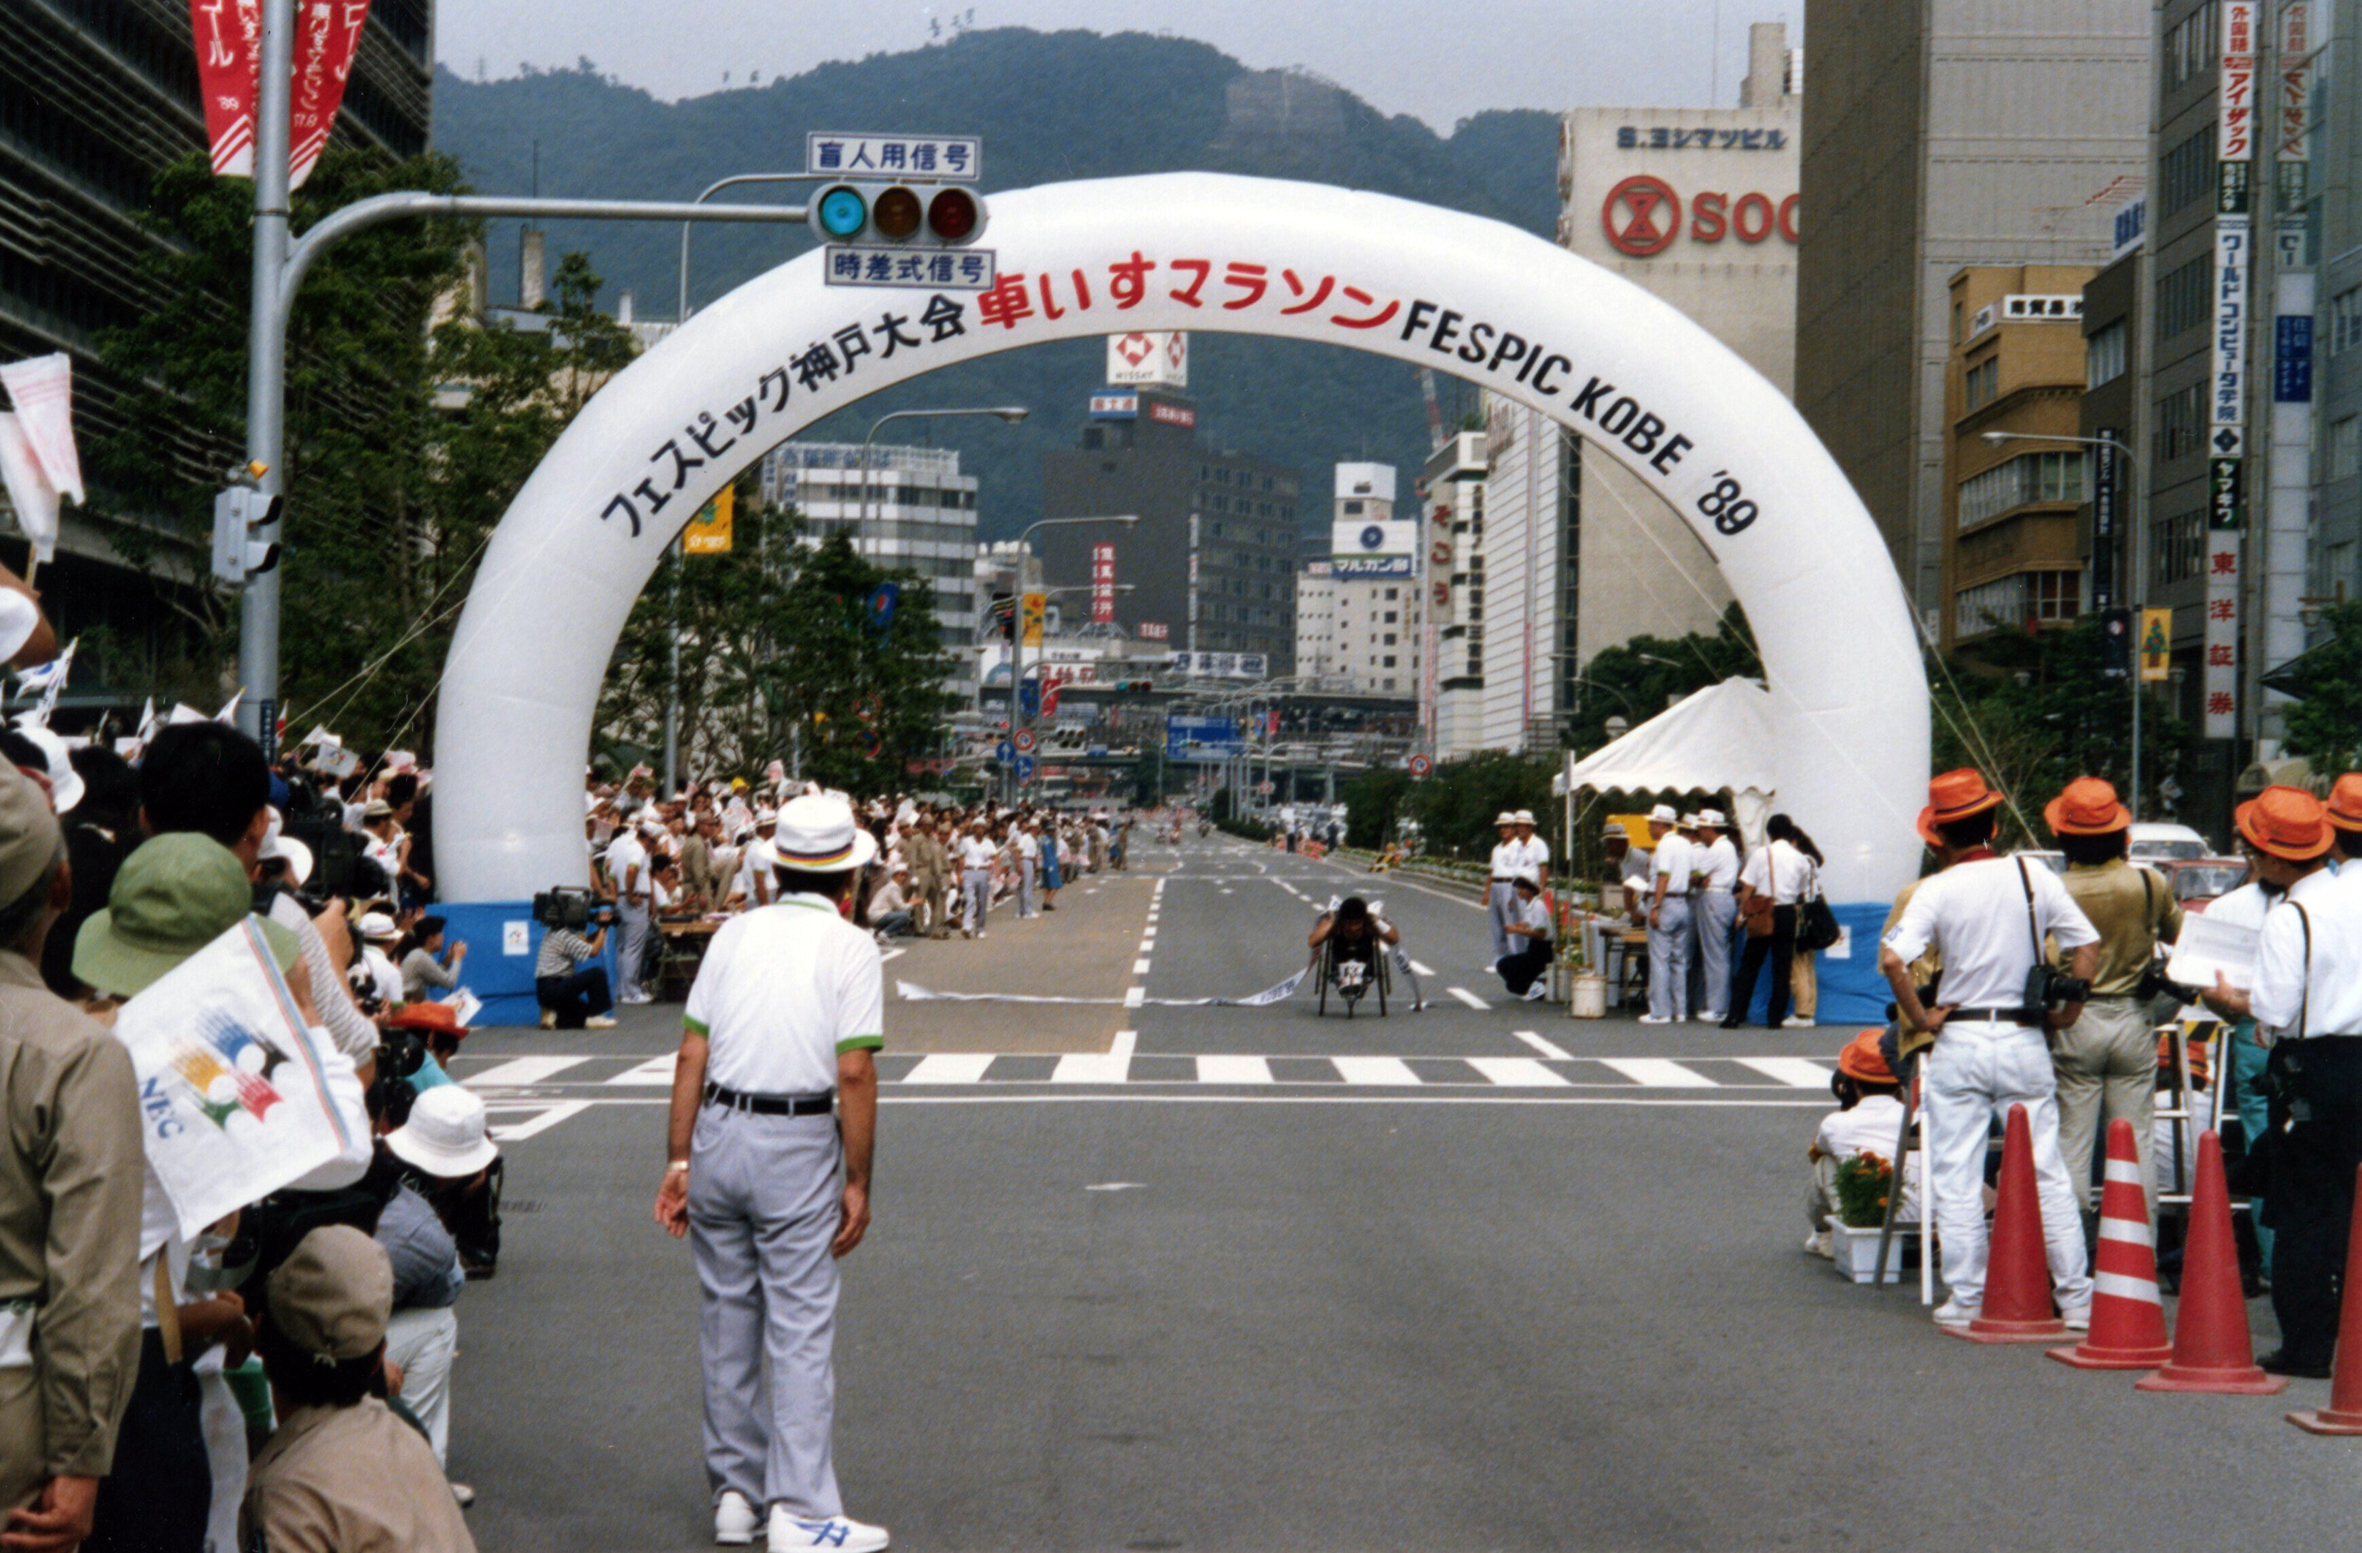 a5af3d541924 File XX0989 - Kobe FESPIC Wheelchair Racing Finish Line - 1 of 2 - Scan.jpg